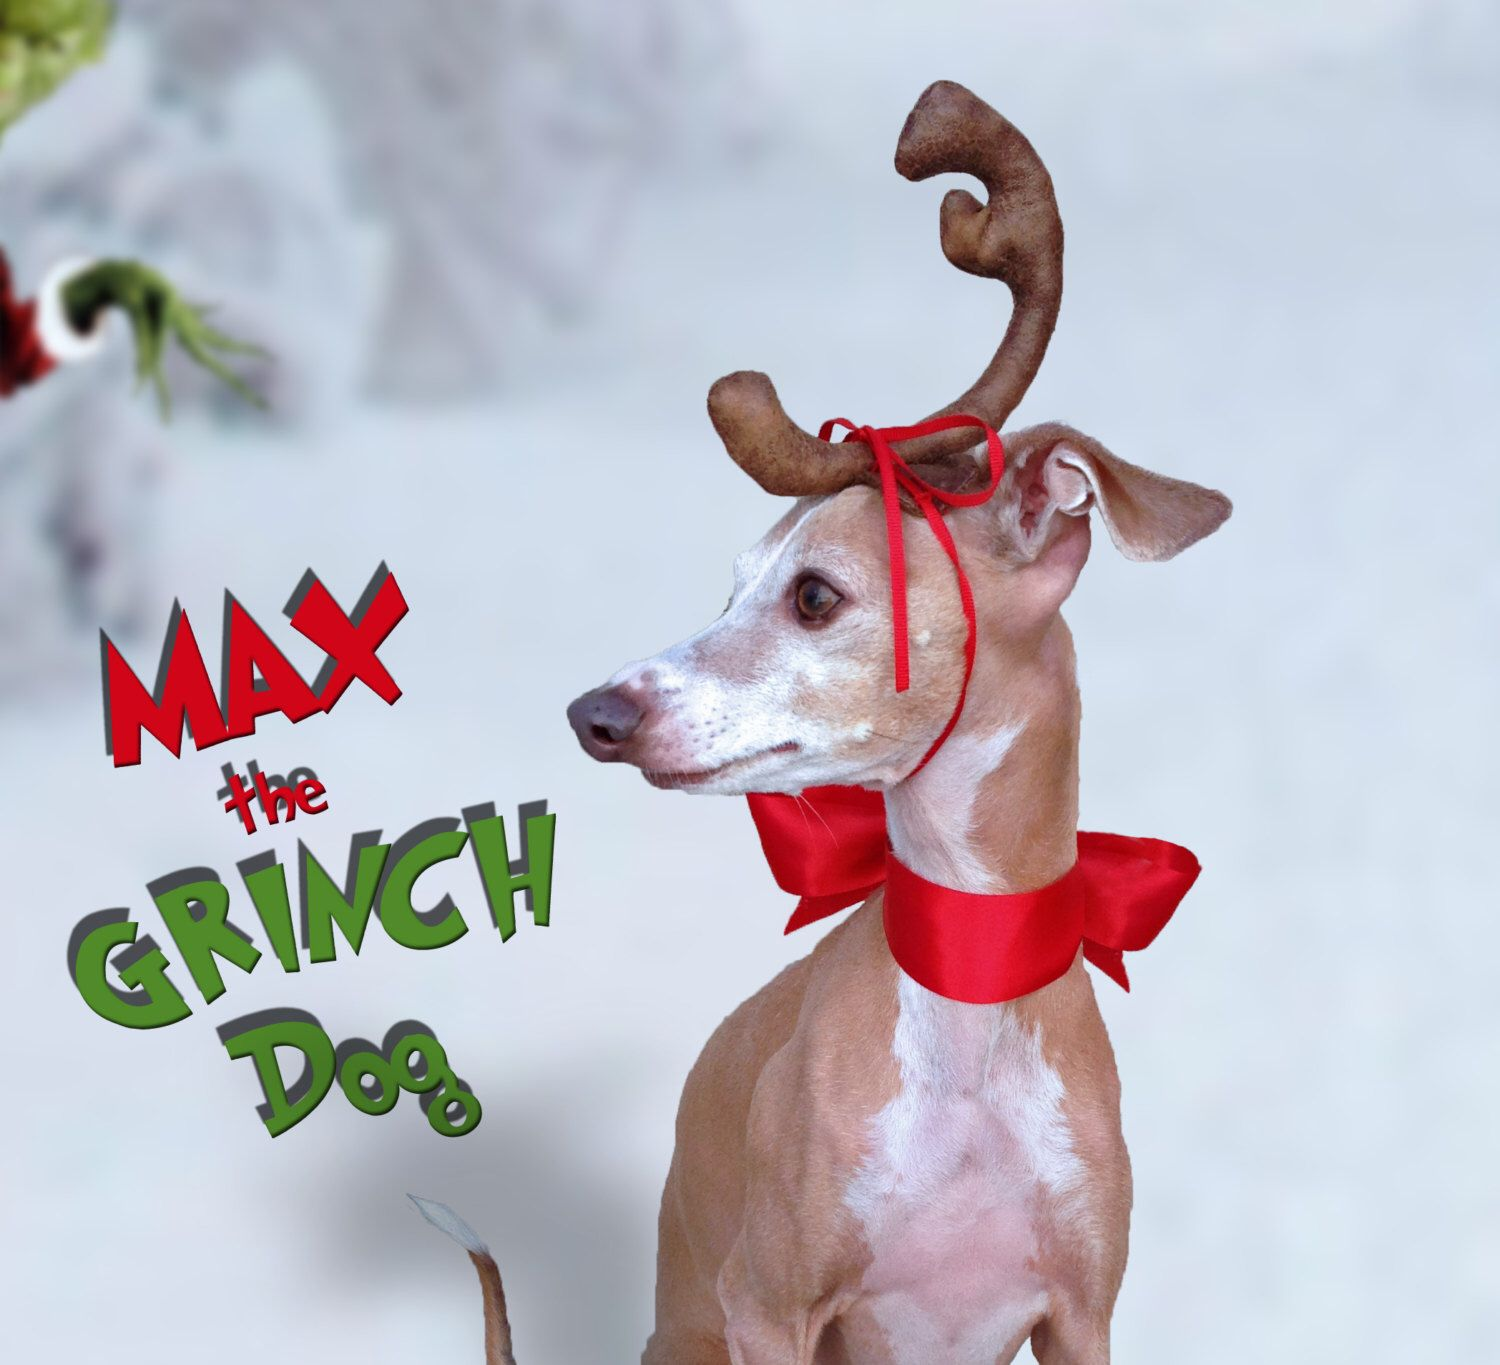 Max the Grinch Dog head antler for Christmas pets, dog or